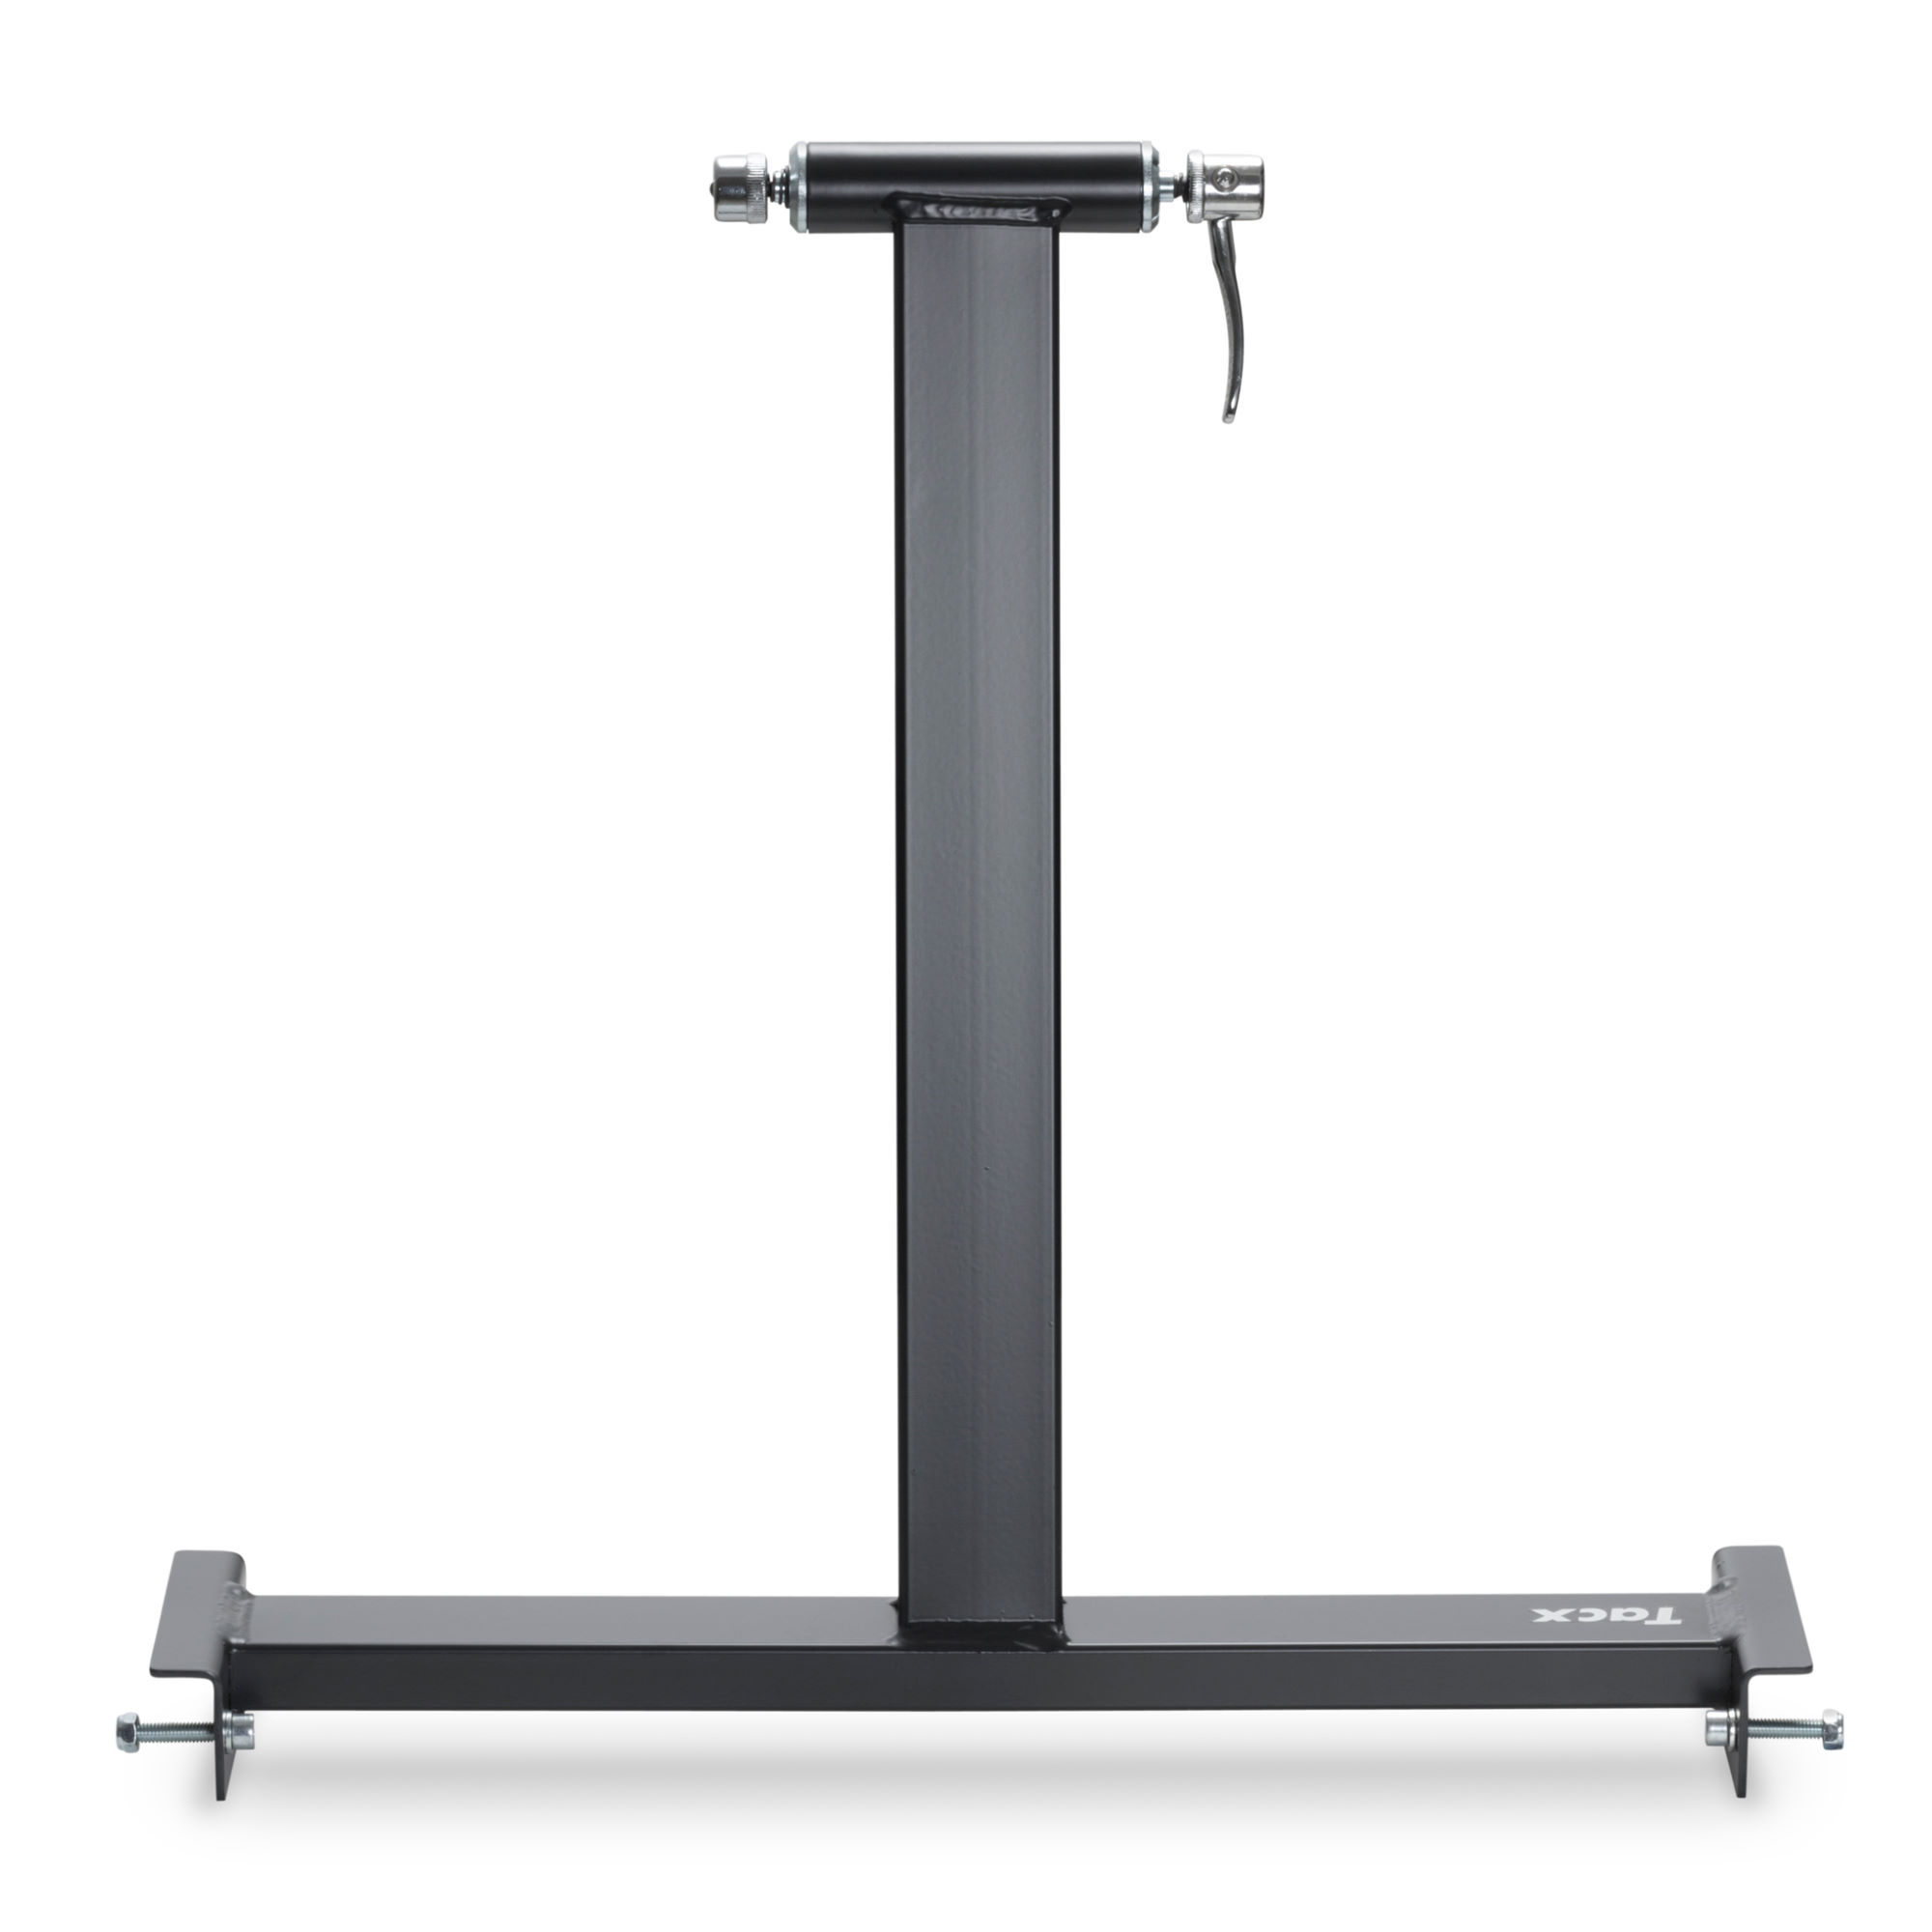 Traid Tacx Beugel Antares T1150